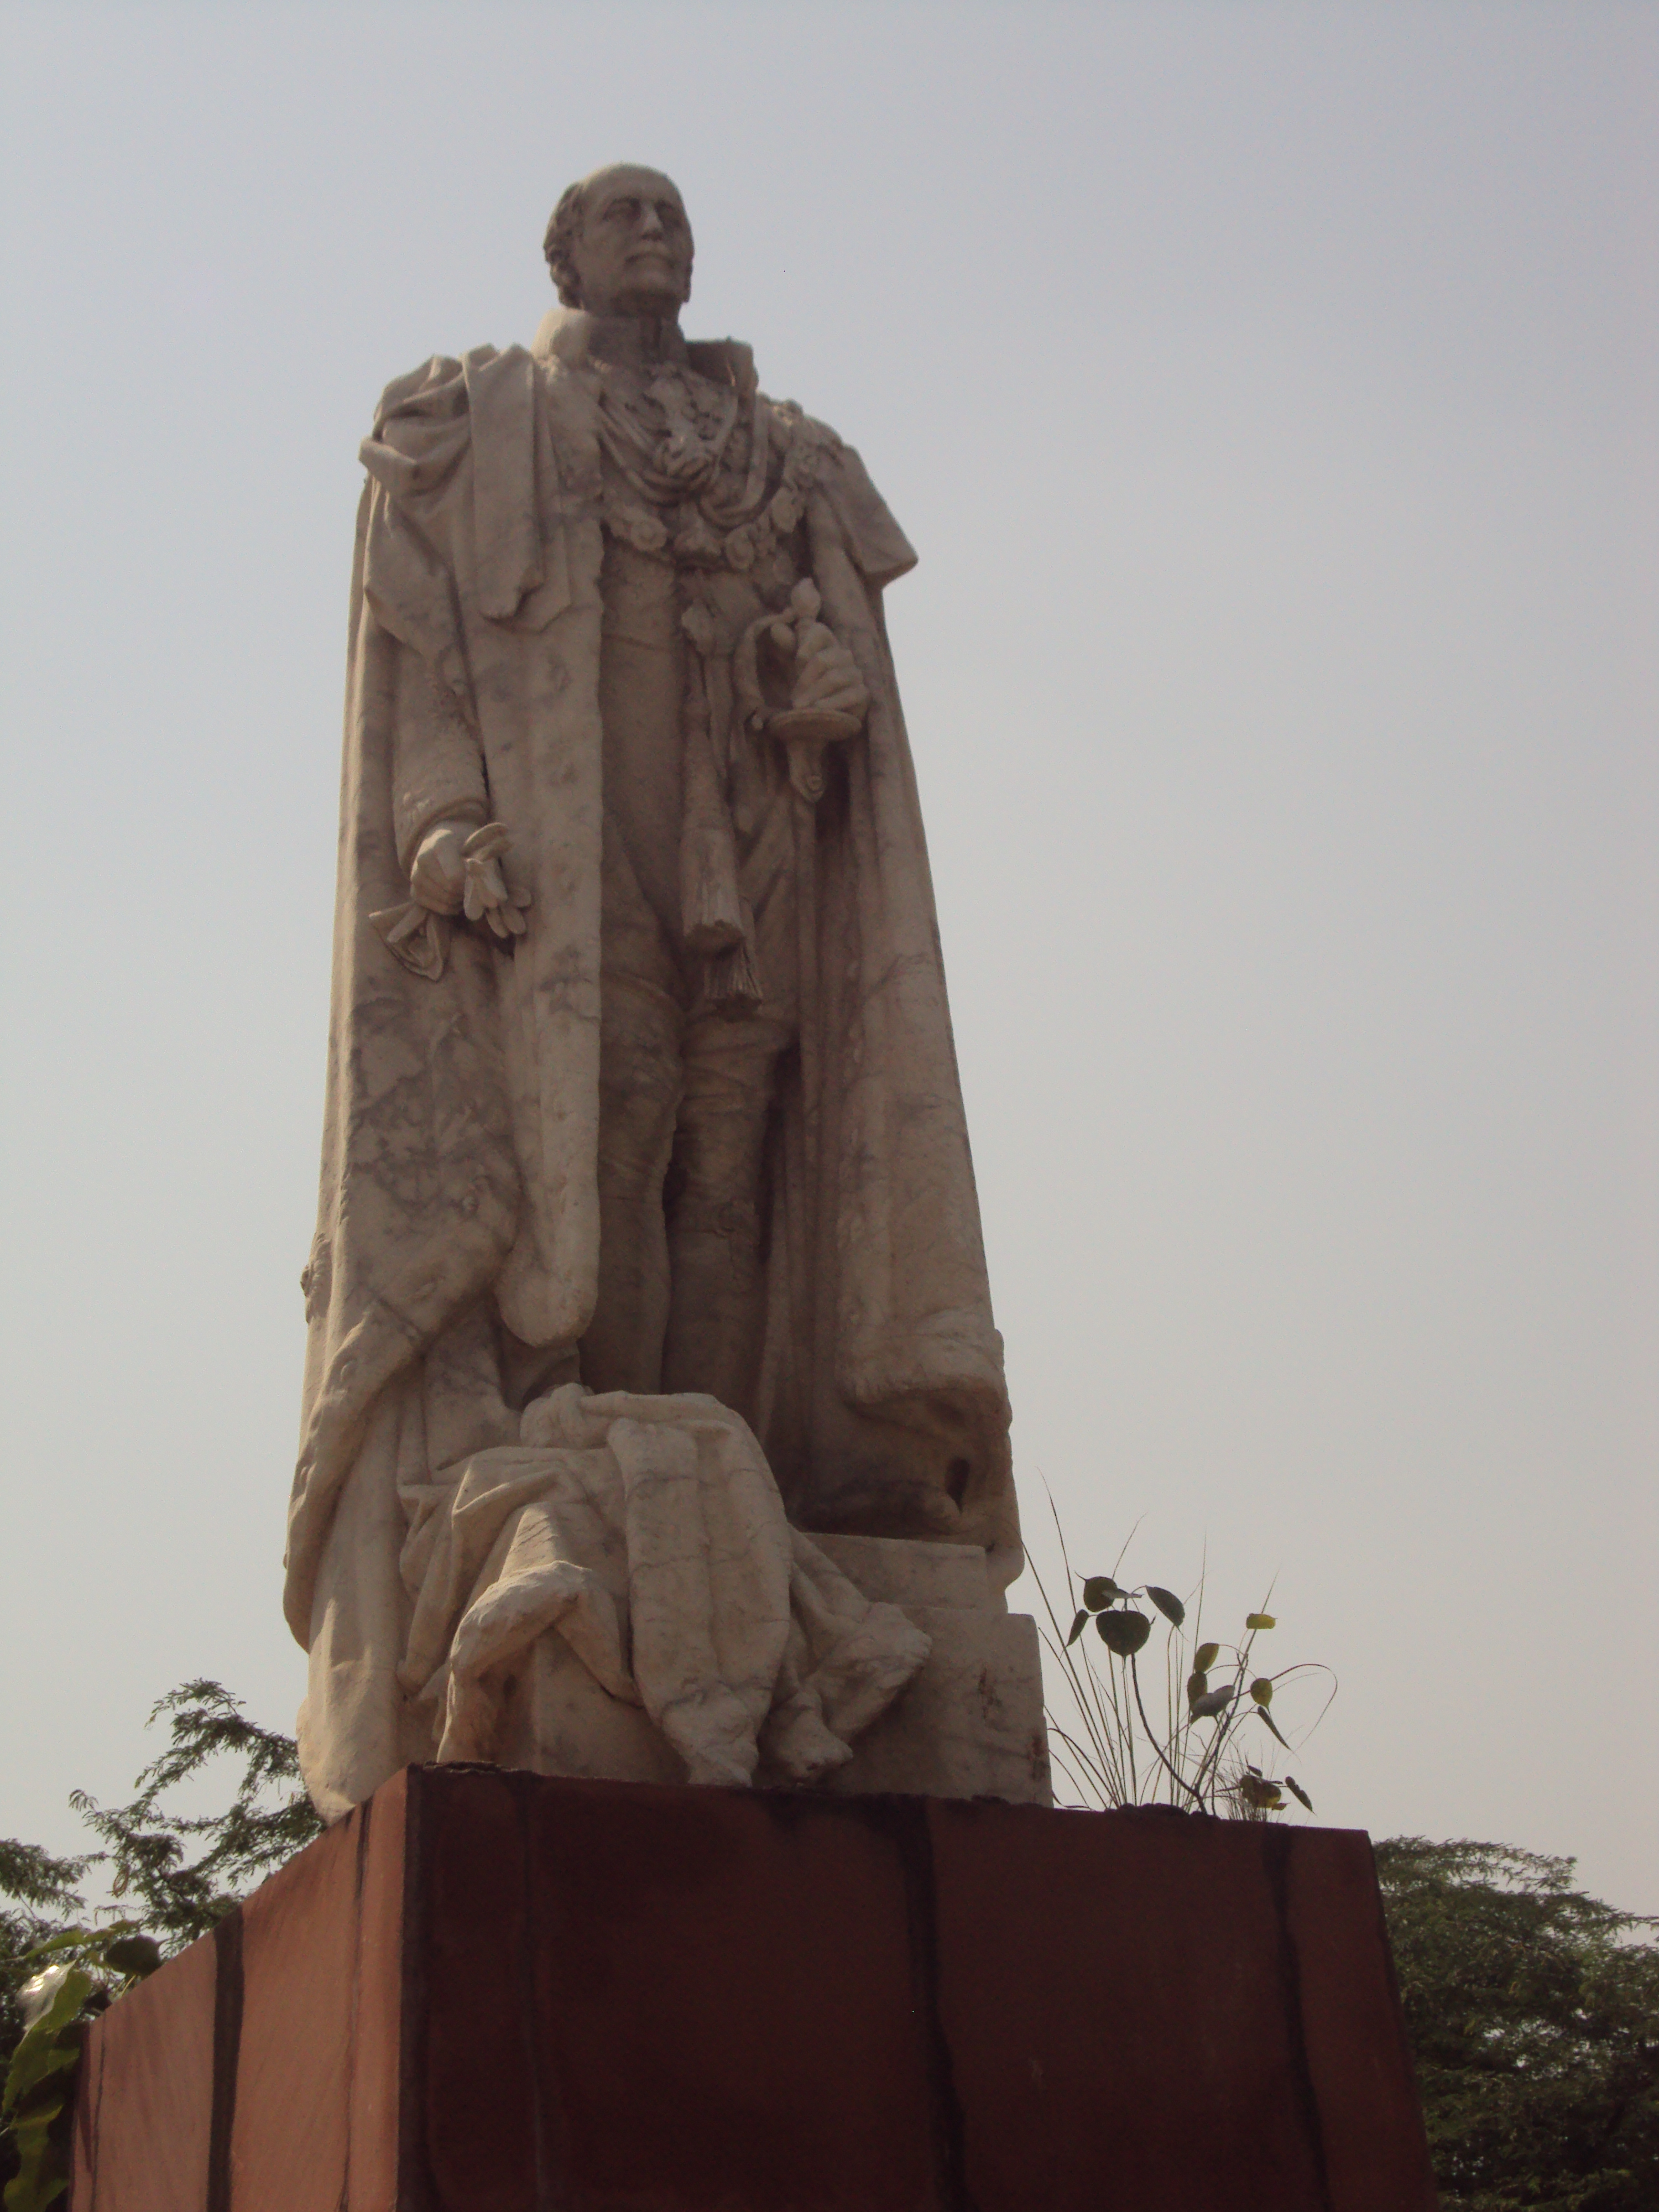 Neglected, Forsaken And In Shambles Coronation Park Is A Nightmare To Get  To Sixty Feet Tall Figure Of King George In All His Regalia Of Crown,